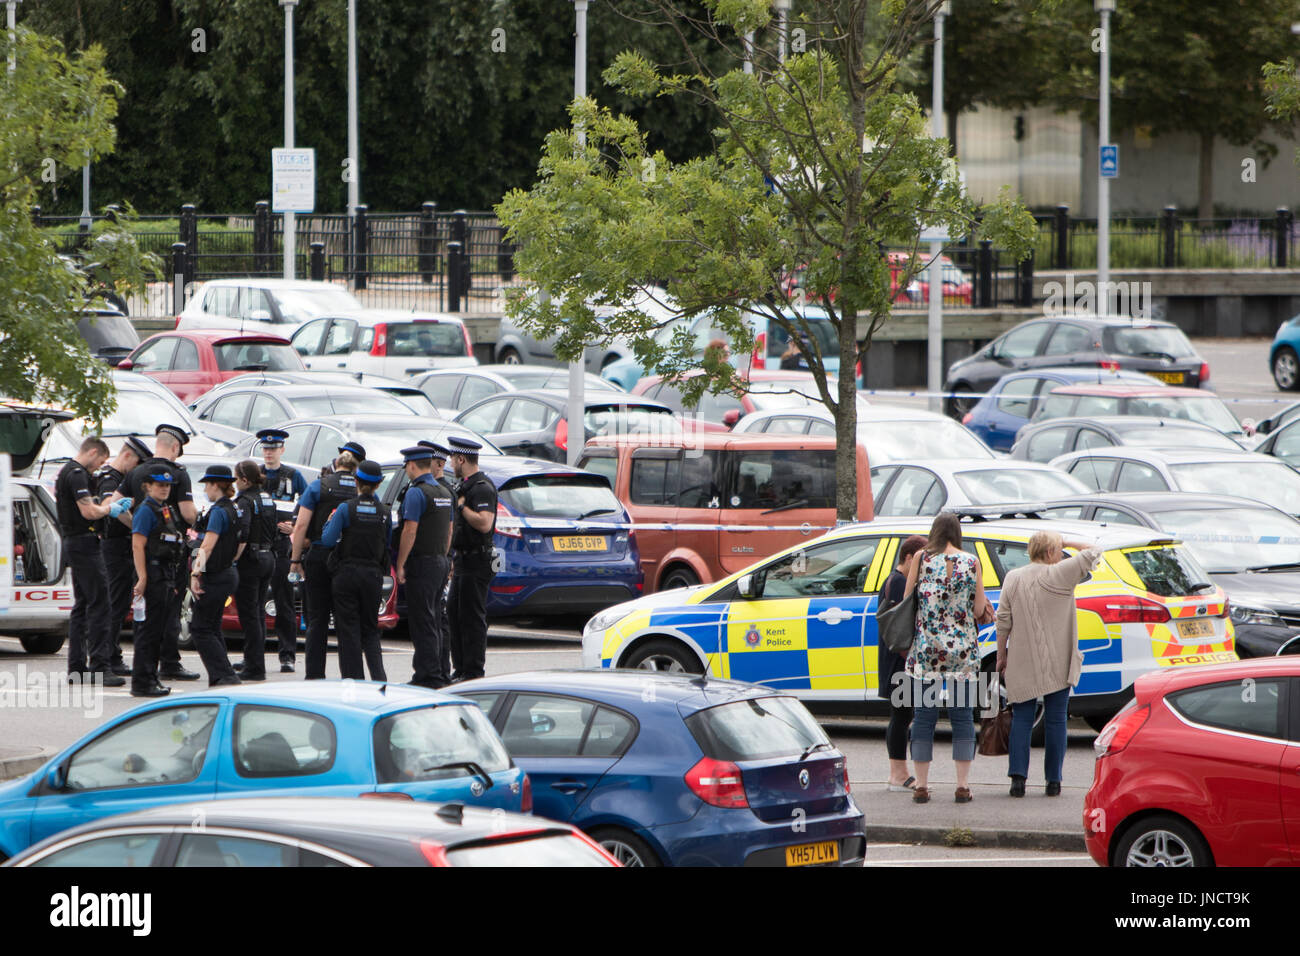 A man has been arrested after allegedly slitting a woman's throat in a busy shopping centre car park this morning Stock Photo